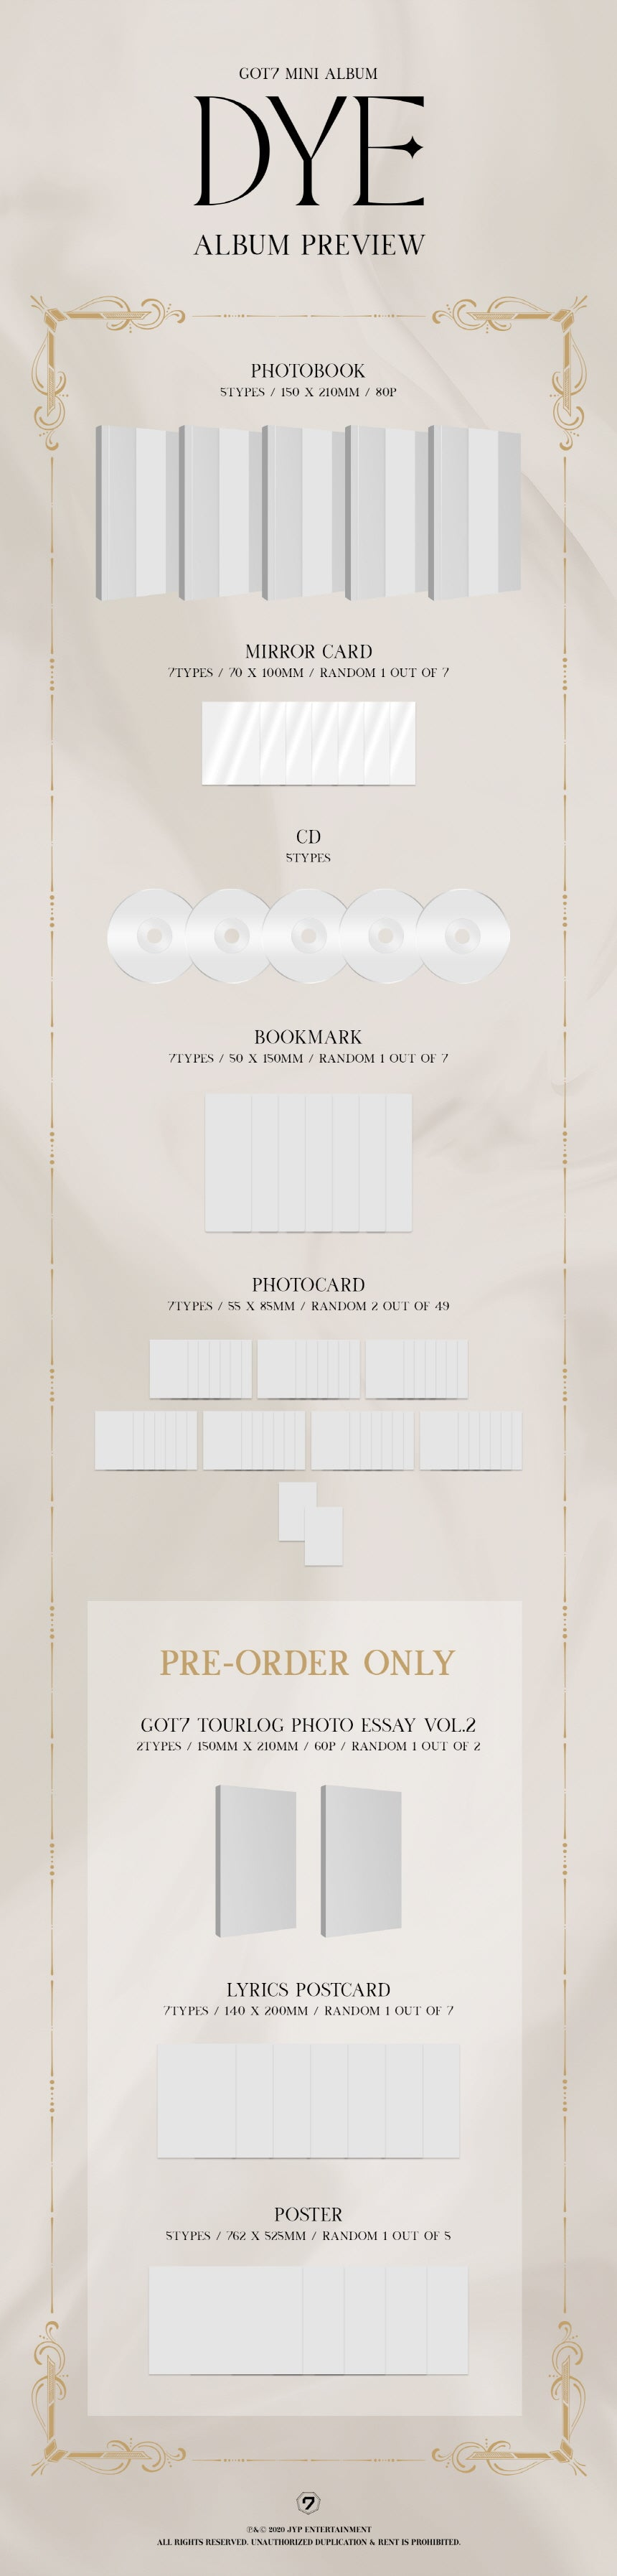 SOKOLLAB PREORDER GOT7 NEW MINI ALBUM DYE